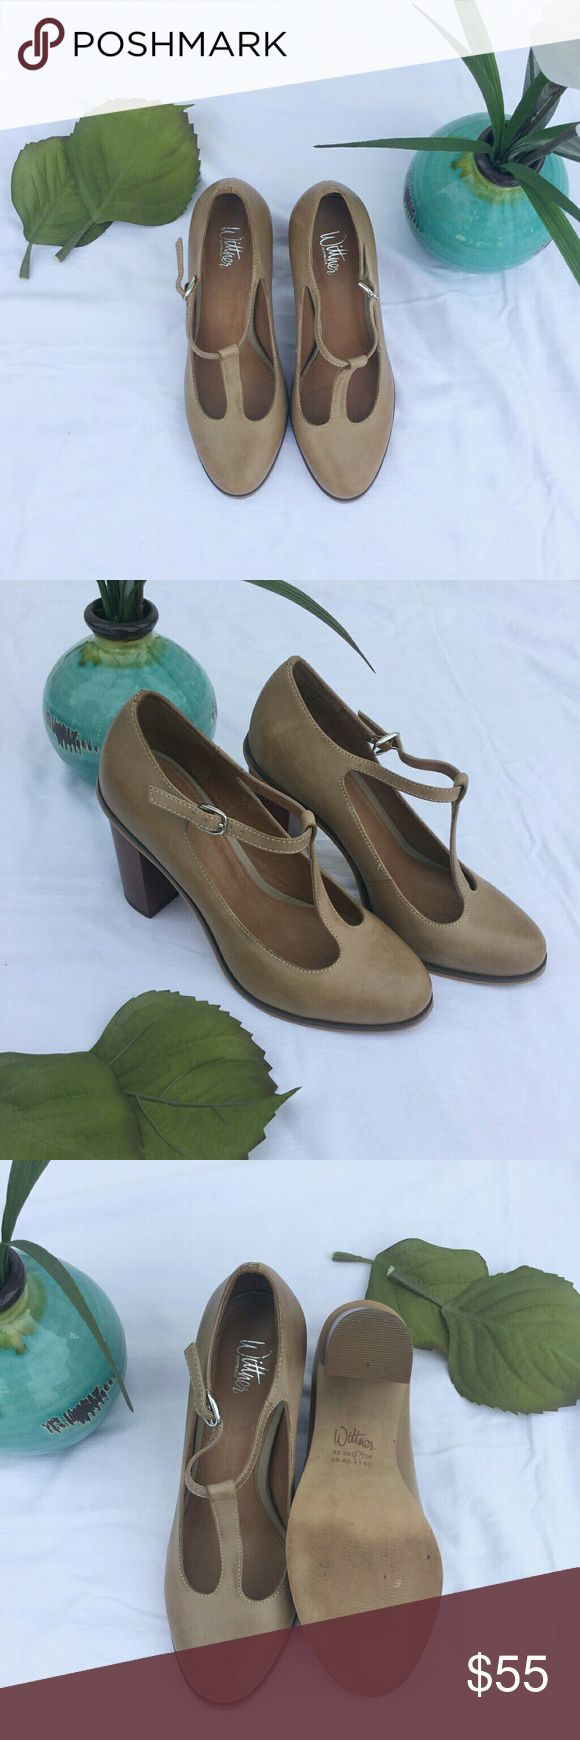 Tan Vintage Style T-Strap Heels Gorgeous vintage style heels in excellent condition with very mild wear on the bottom. Wittner Shoes Heels